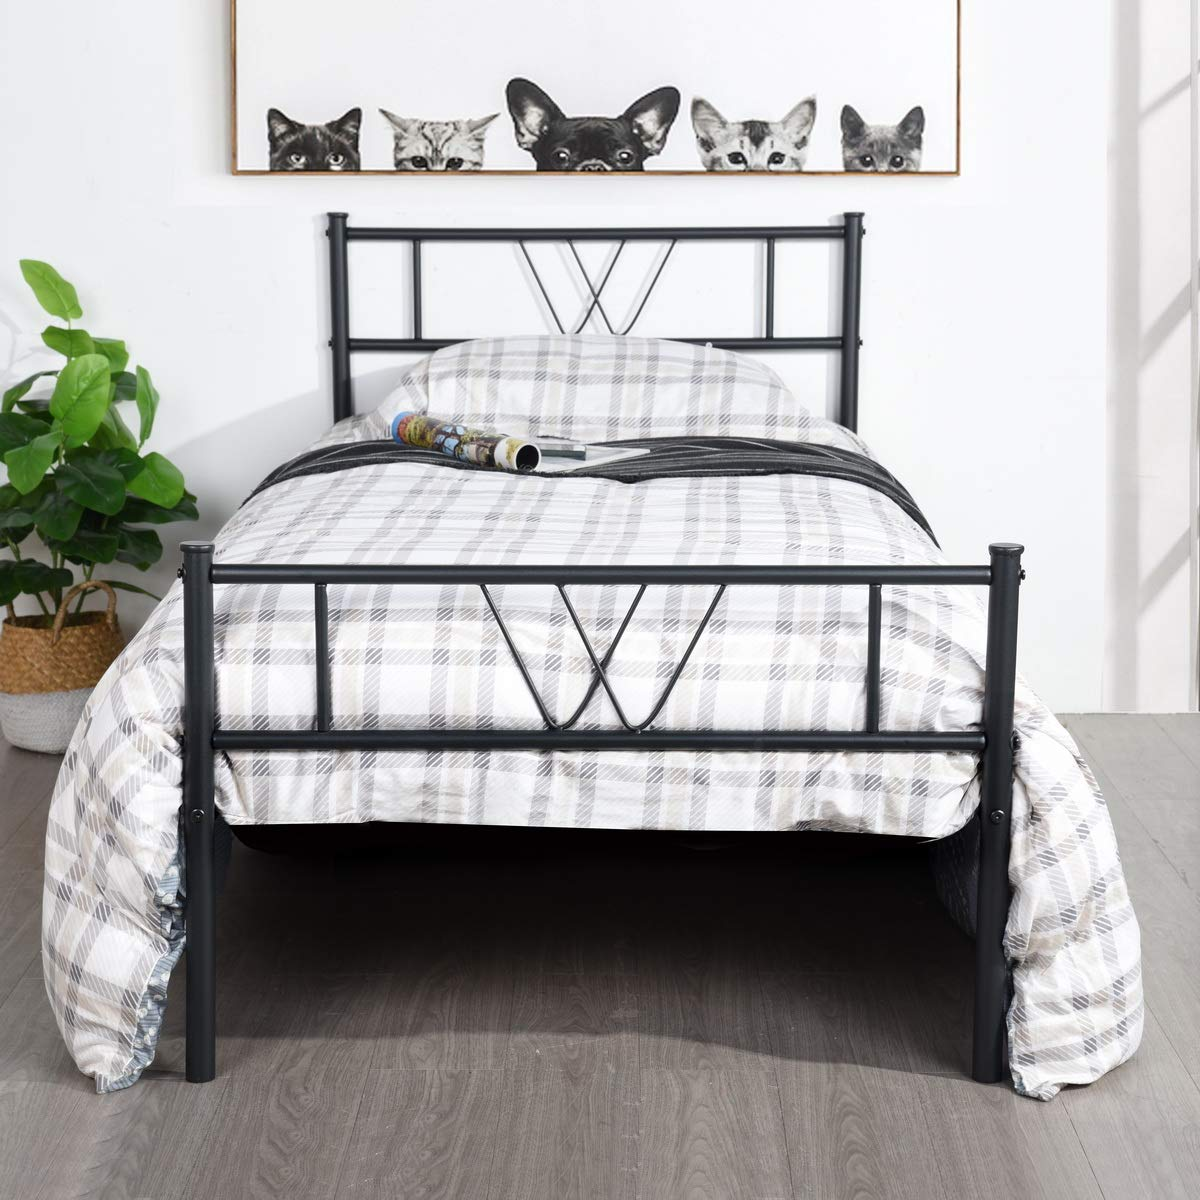 GreenForest Bed Frame Twin Size, Two Headboards Metal Mattress Foundation Single Platform Bed Frame No Box Spring Needed, Black by GreenForest